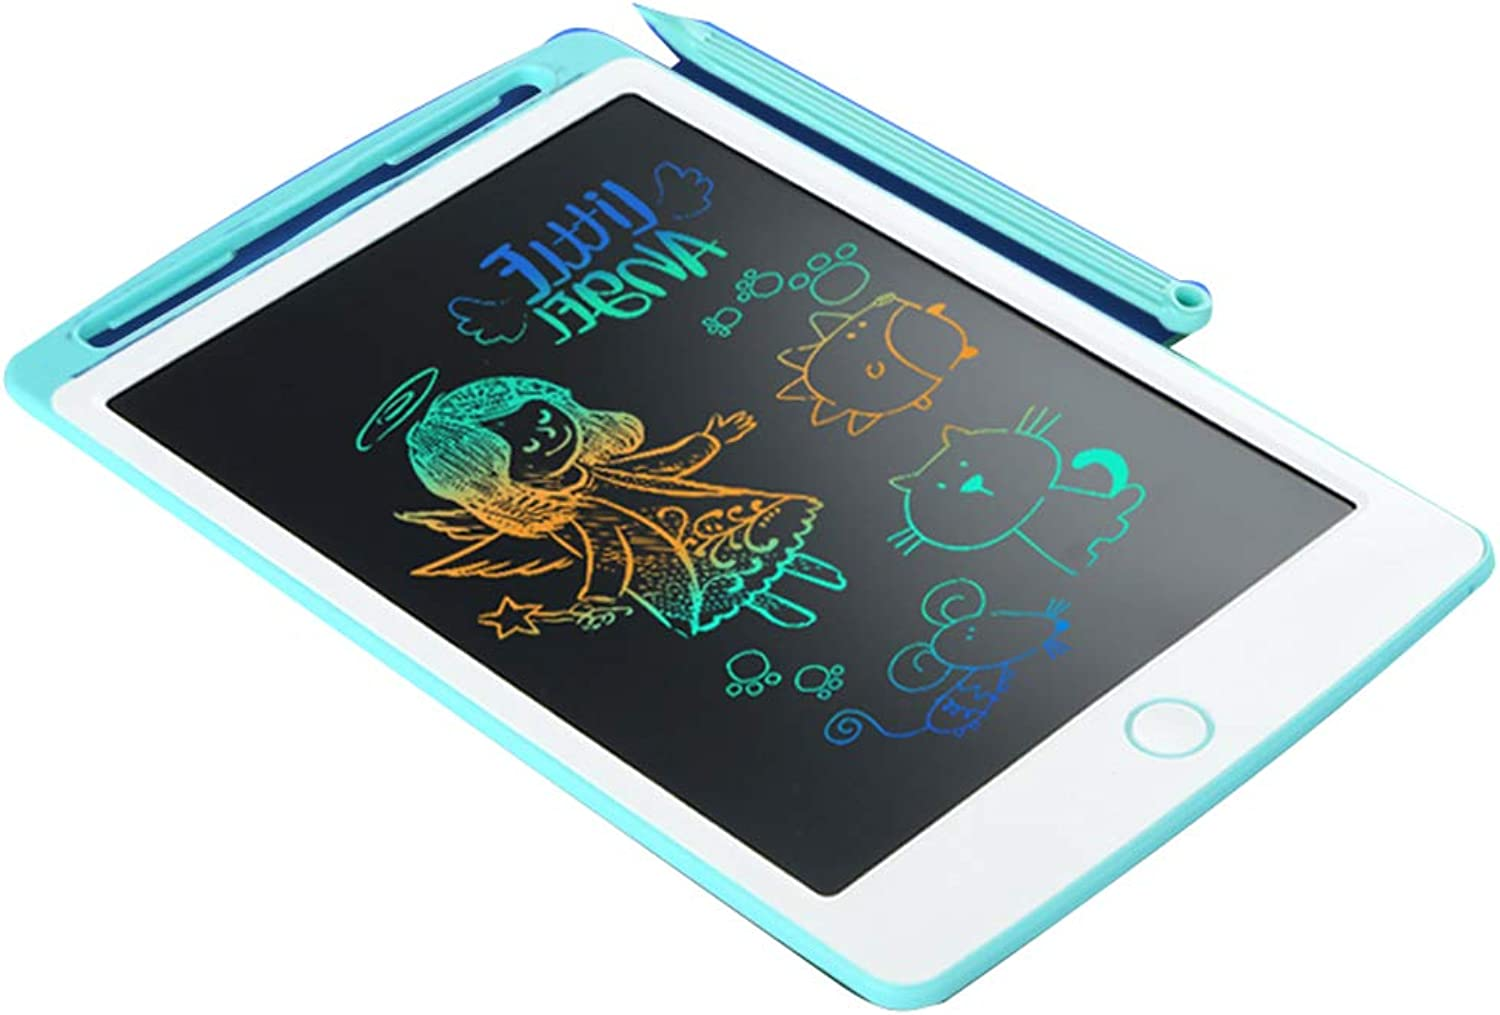 ETSXB 10 Inch colorful Display LCD Writing Tablet Kids Writing and Drawing Electronic Writing Board for Instead of Paper